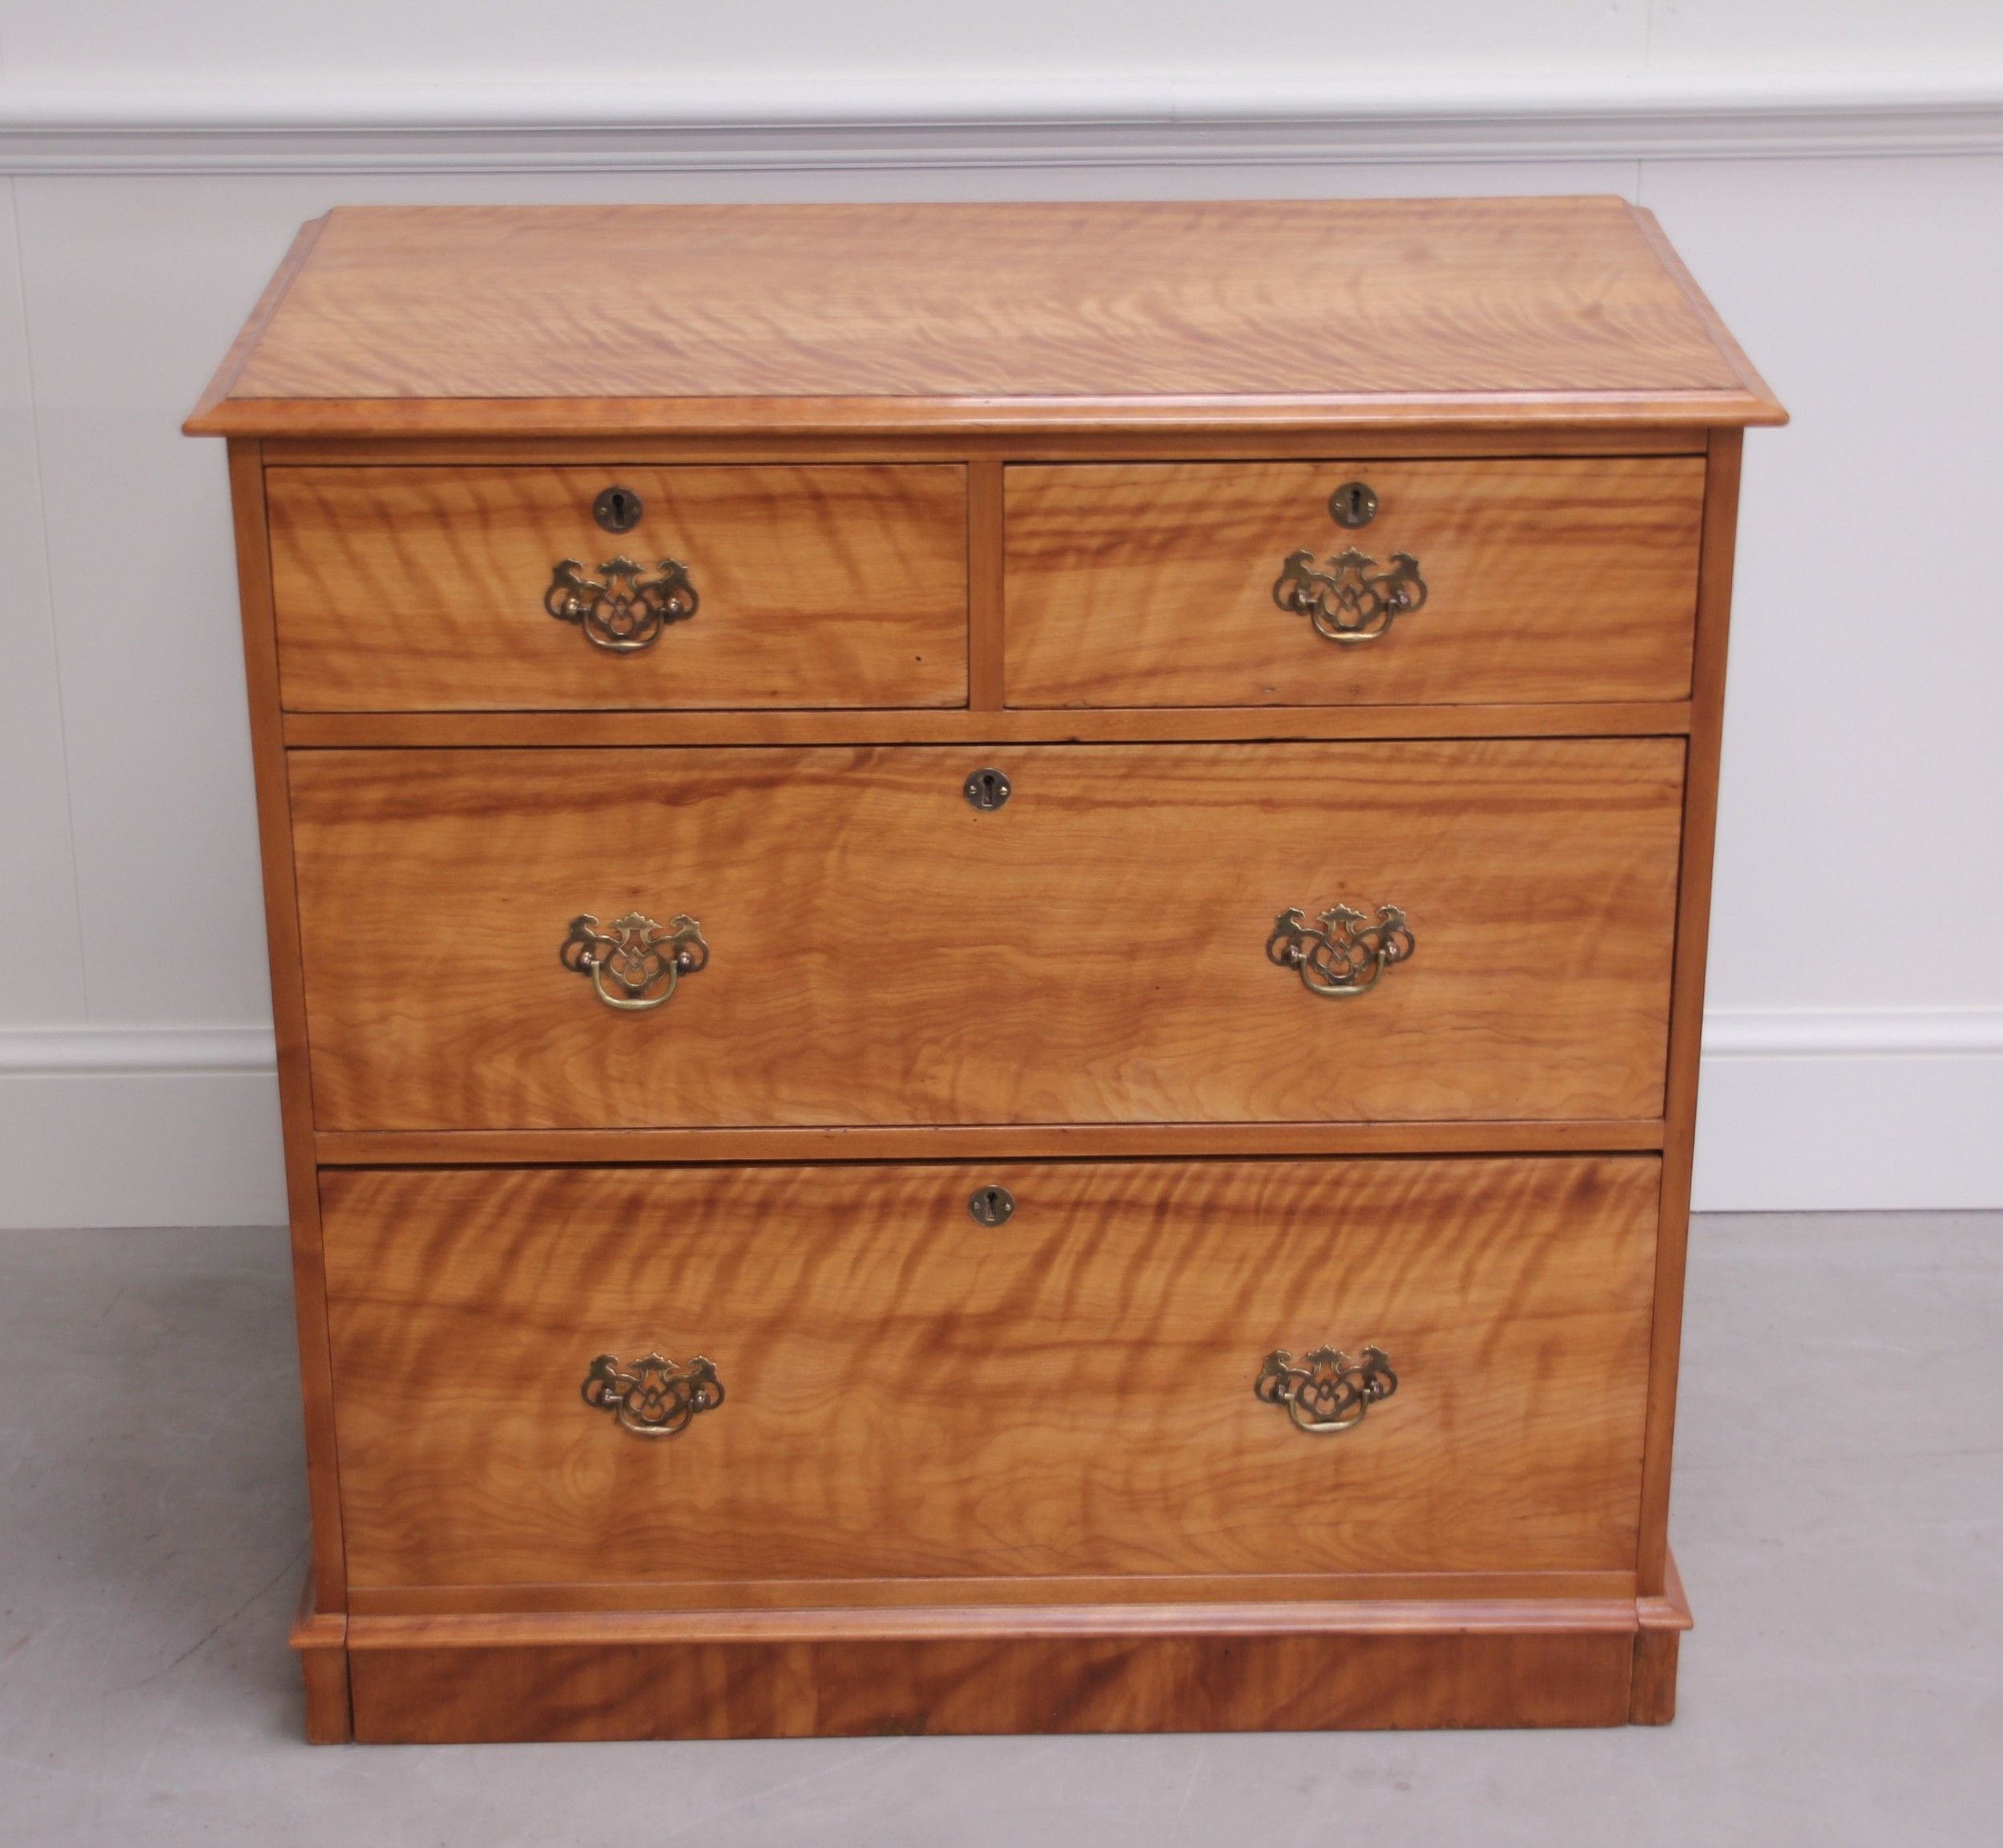 a 19th century satin birch chest of drawers